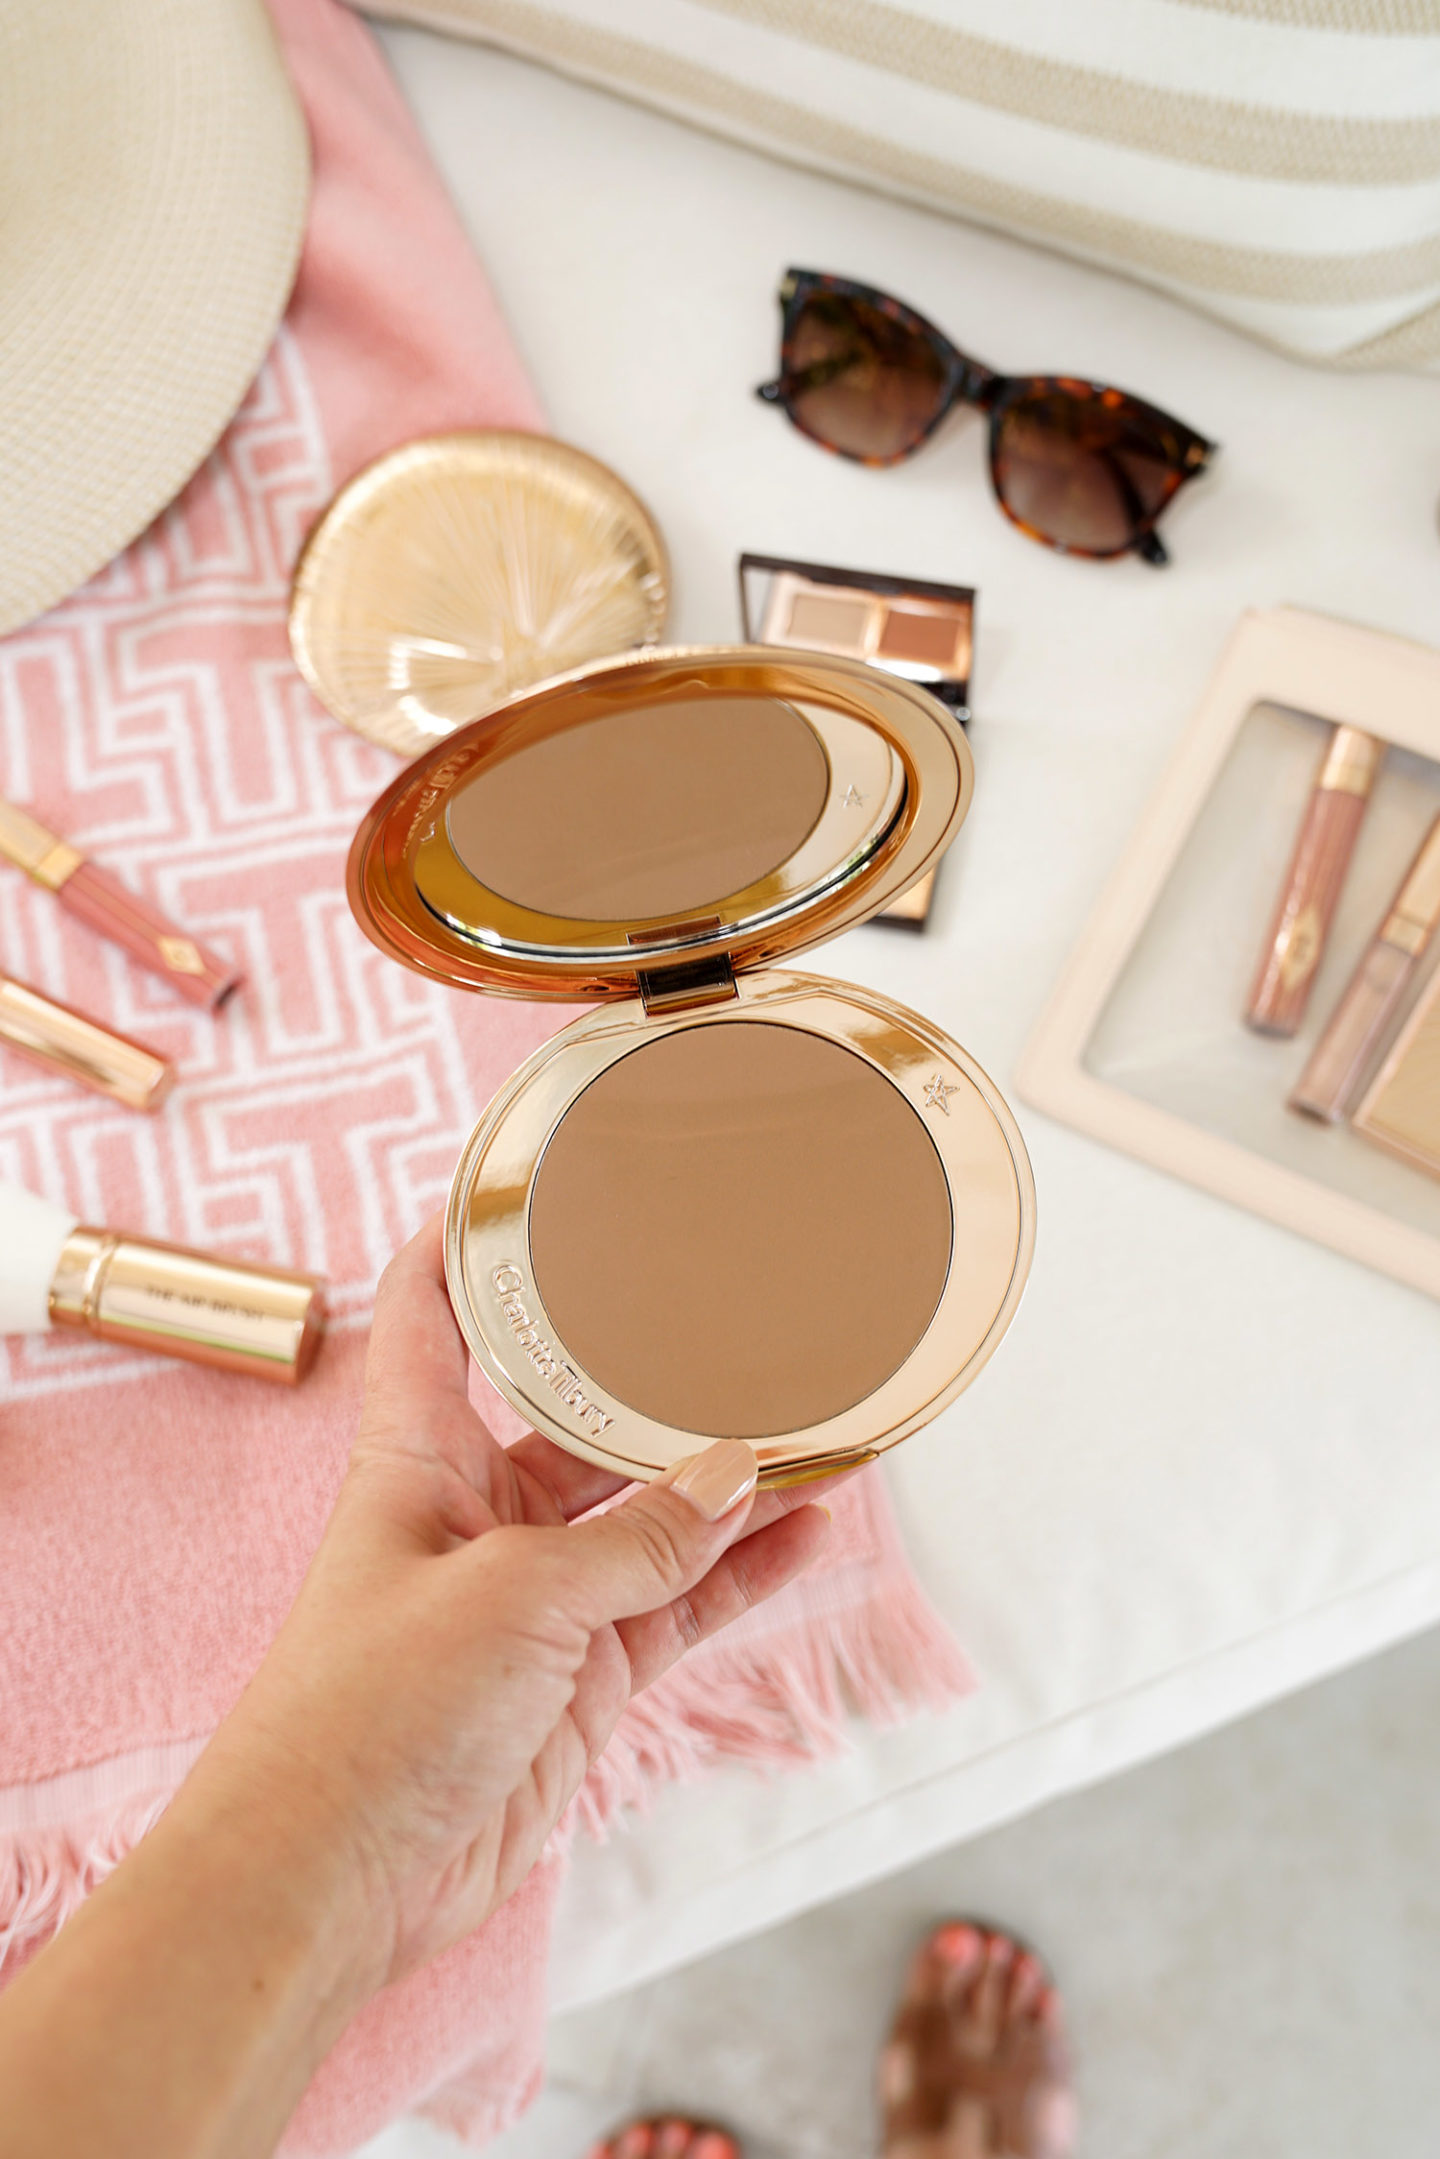 Charlotte Tilbury Airbrush Bronzer in Medium | The Beauty Look Book